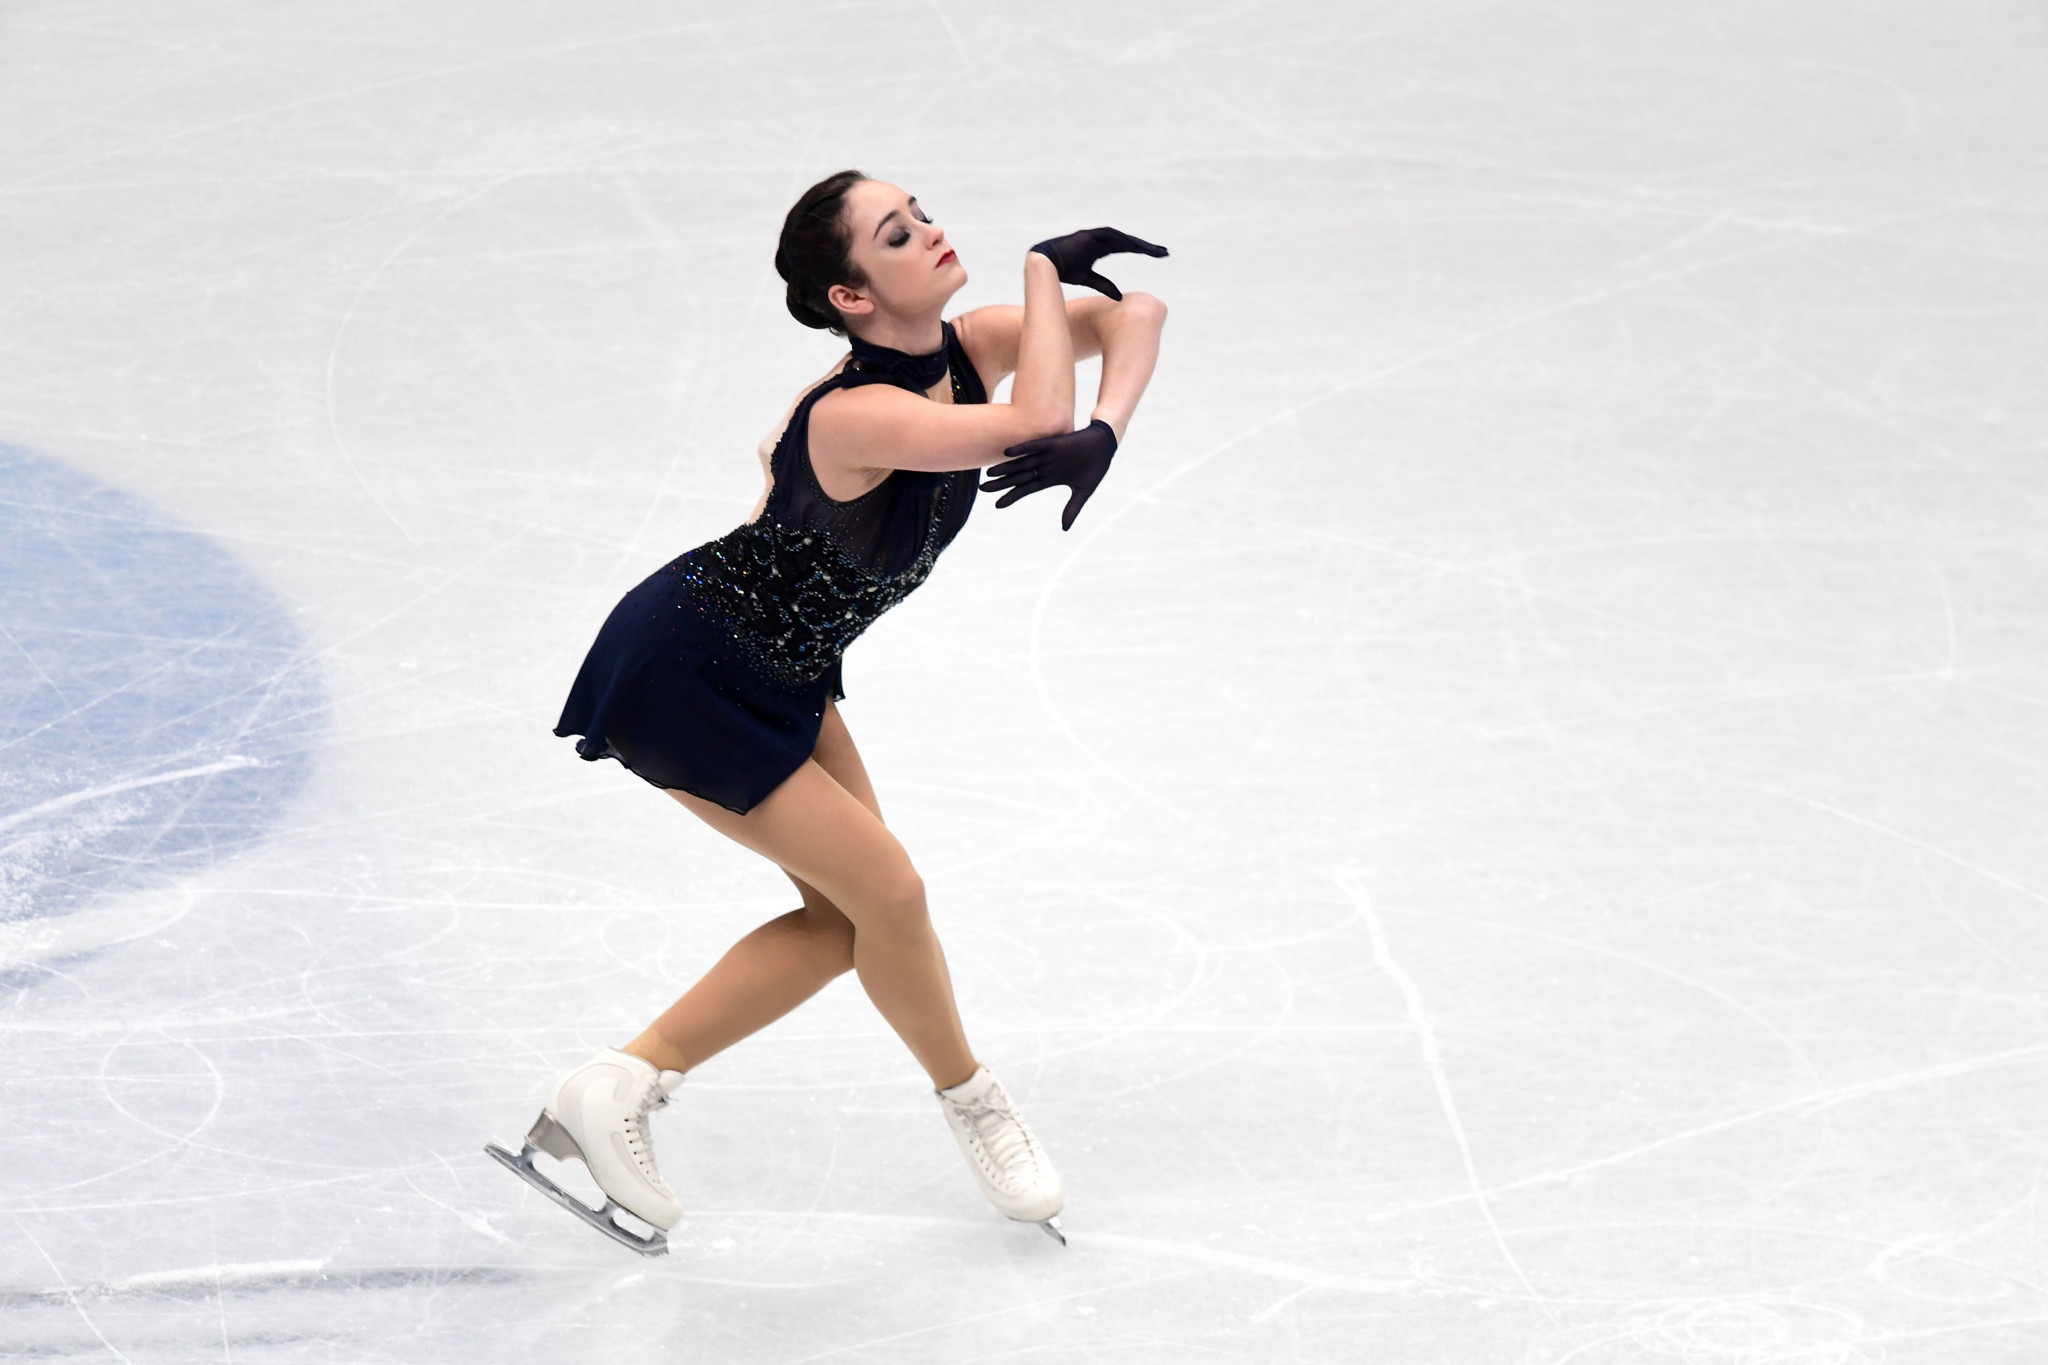 Reigning world champion Osmond to skip entire 2018 to 2019 figure skating season